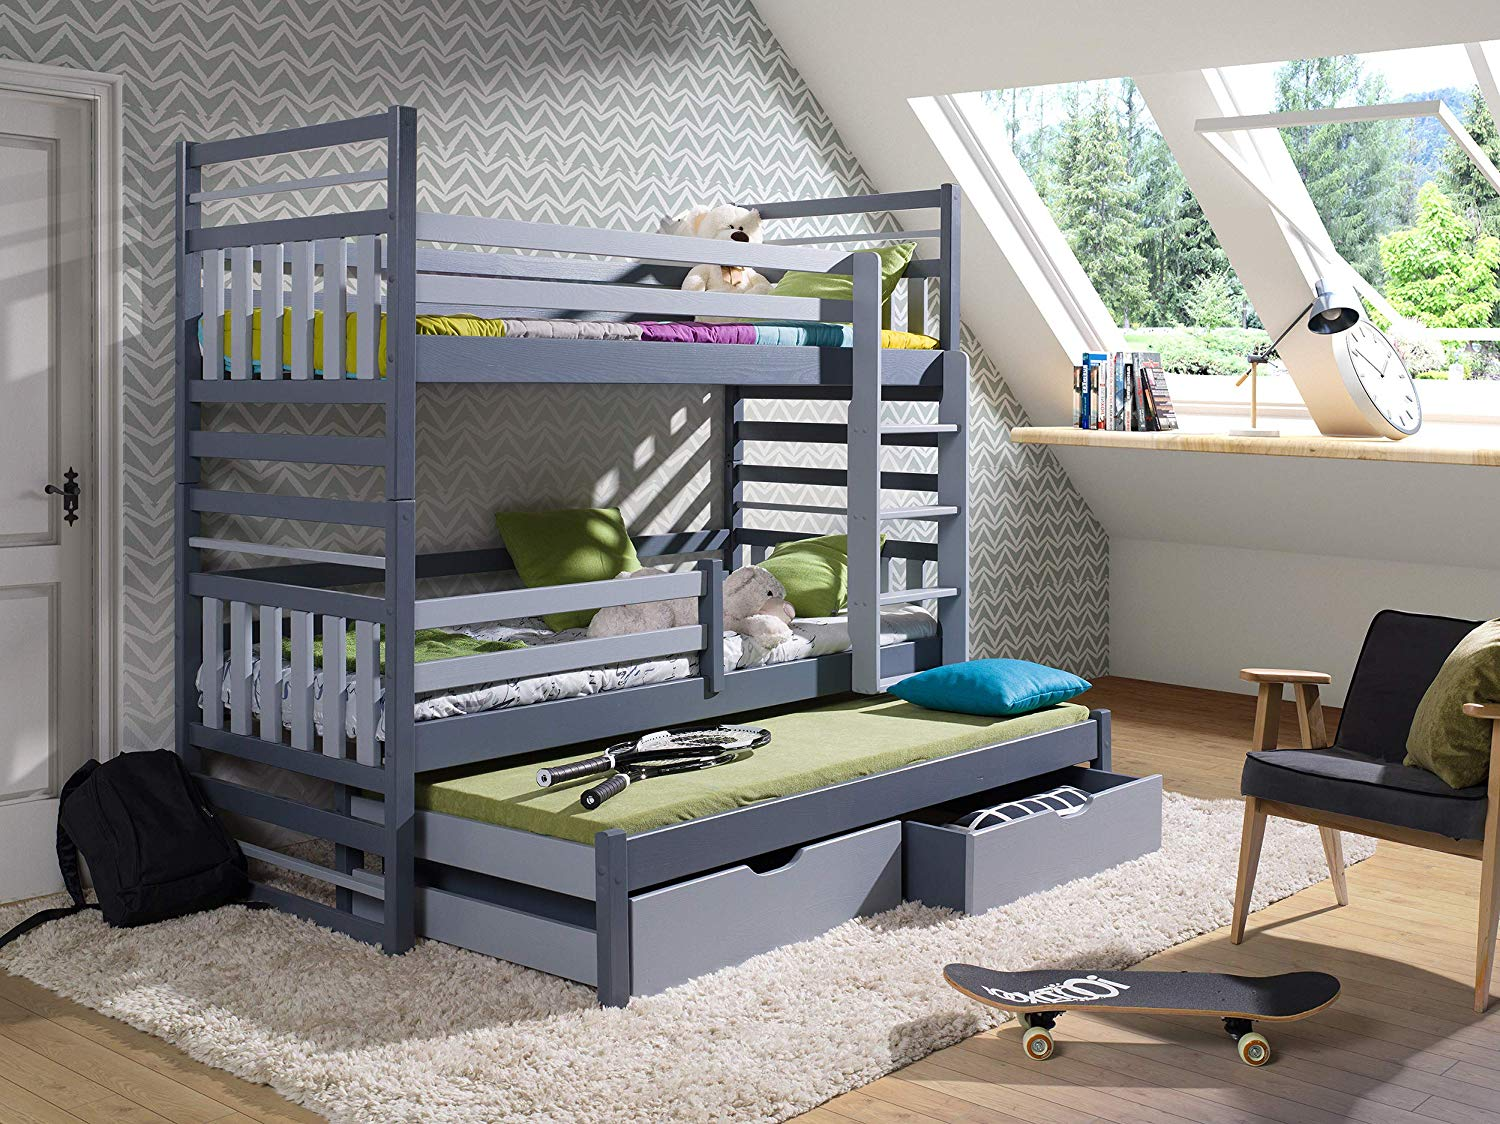 8 Best Kids Bunk Beds For A Good Night Sleep